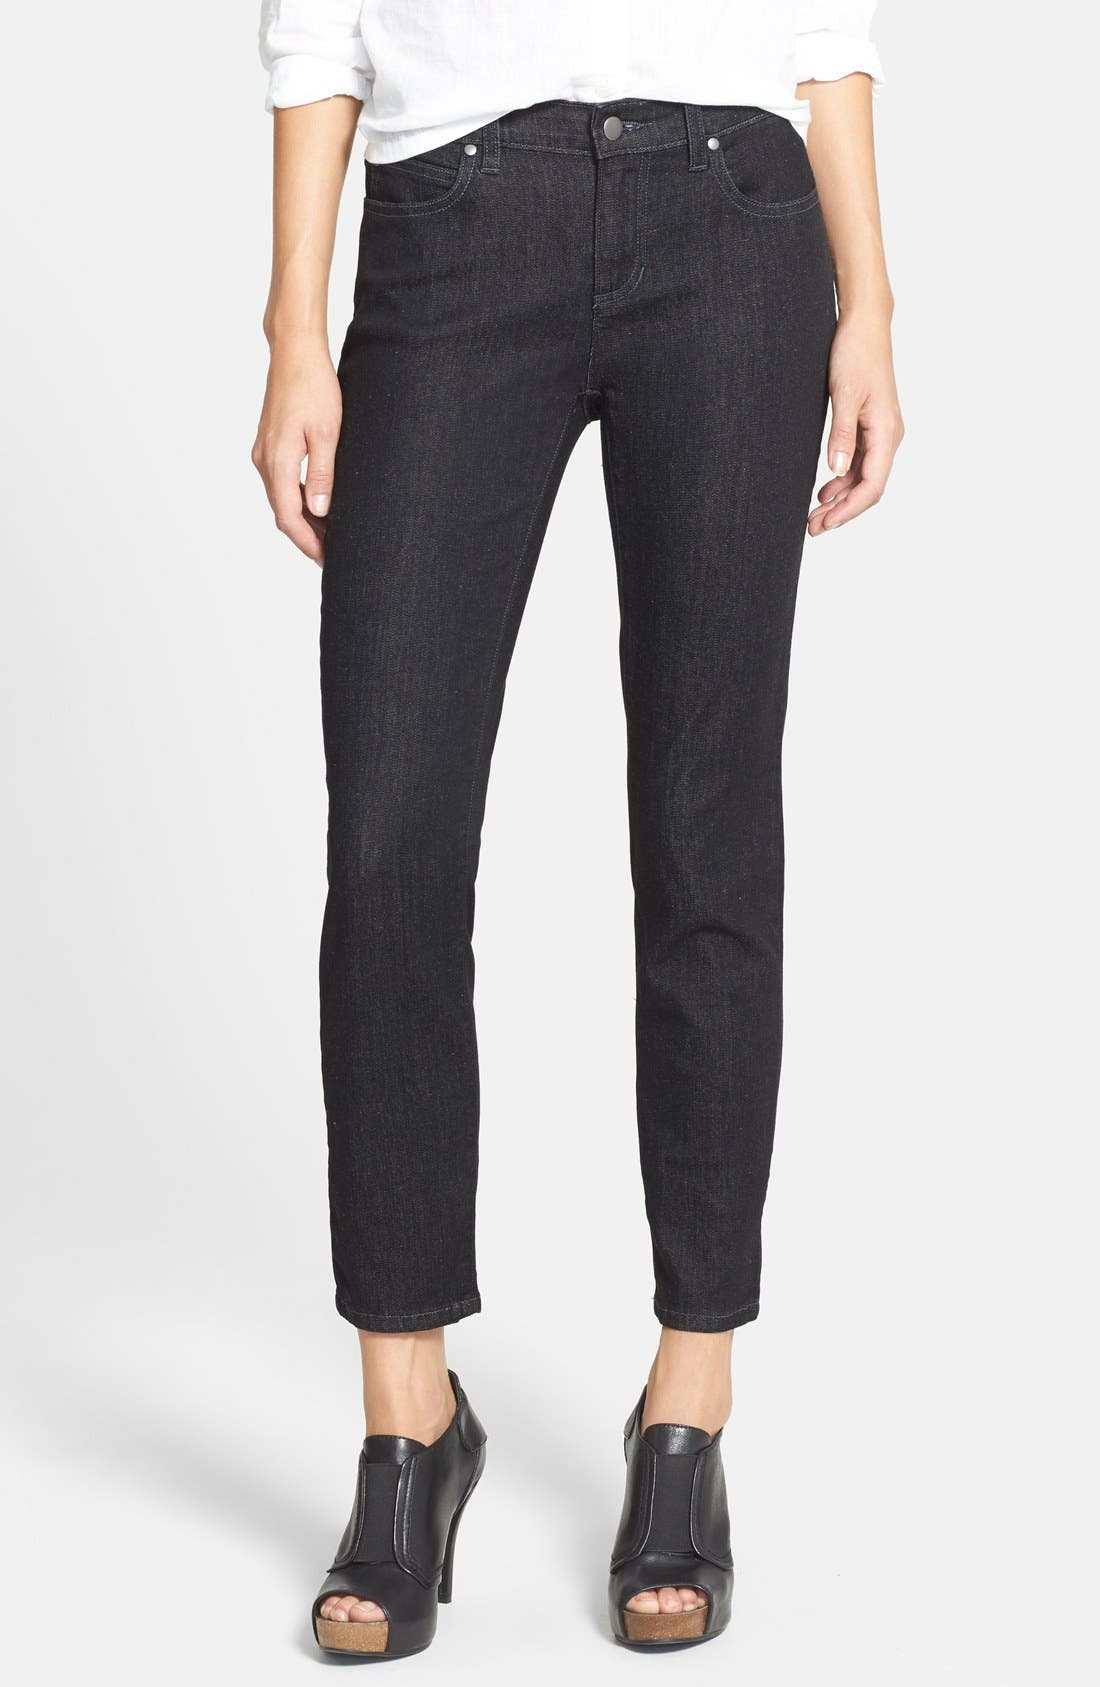 Main Image - Eileen Fisher Stretch Skinny Jeans (Regular & Petite) (Online Only)